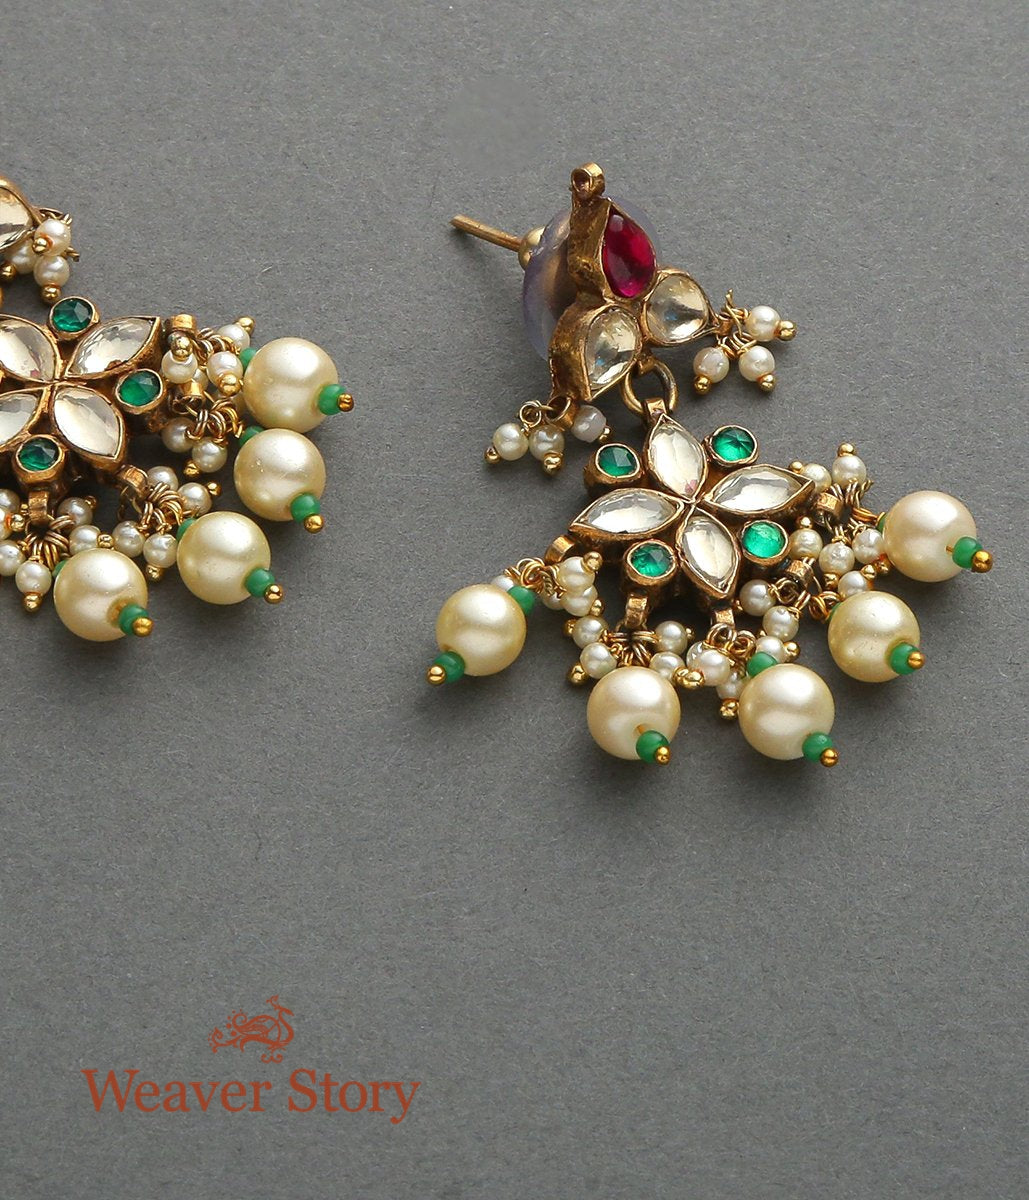 Floral Kundan Earrings with Rubies and Emerald Stones